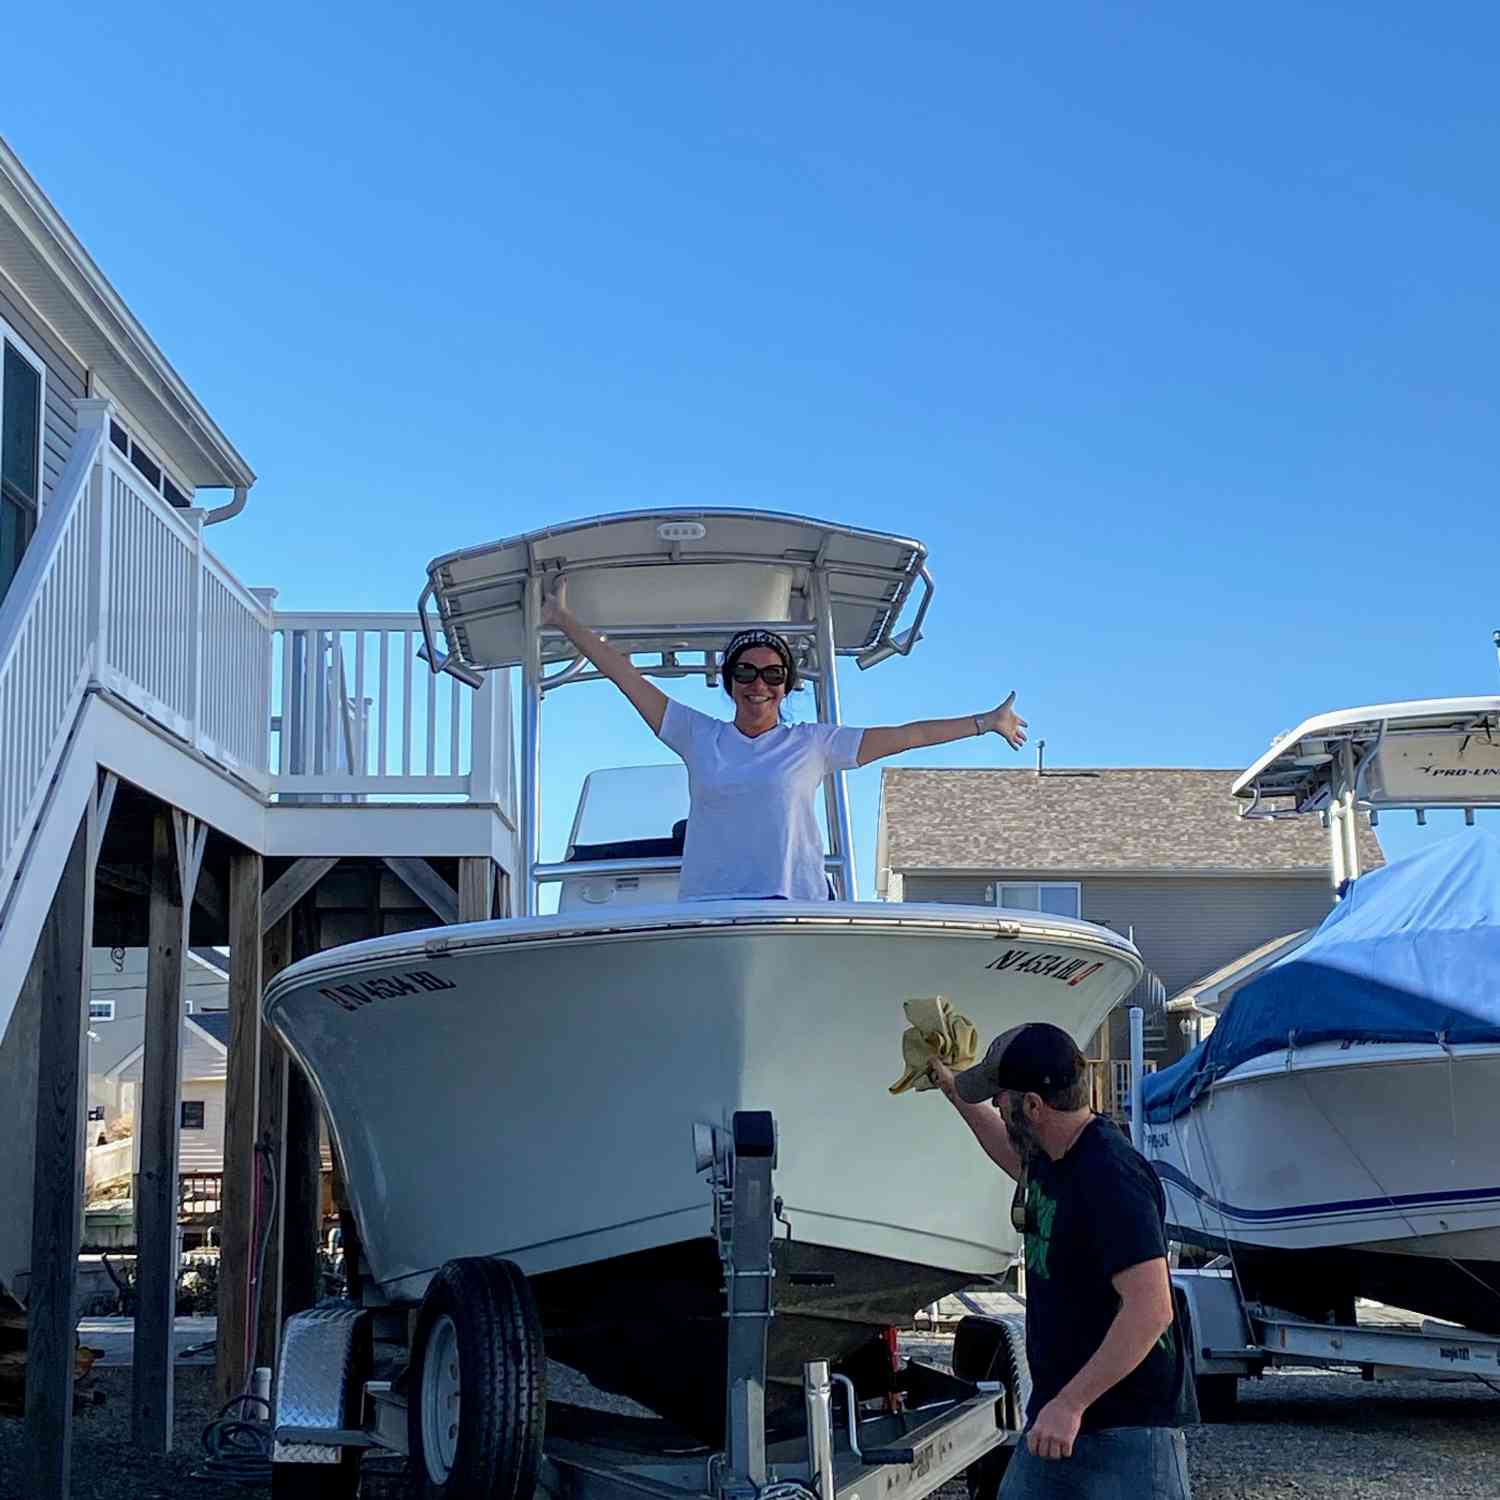 Title: Boat fun - On board their Sportsman Heritage 211 Center Console - Location: Mystic Island New Jersey. Participating in the Photo Contest #SportsmanFebruary2021